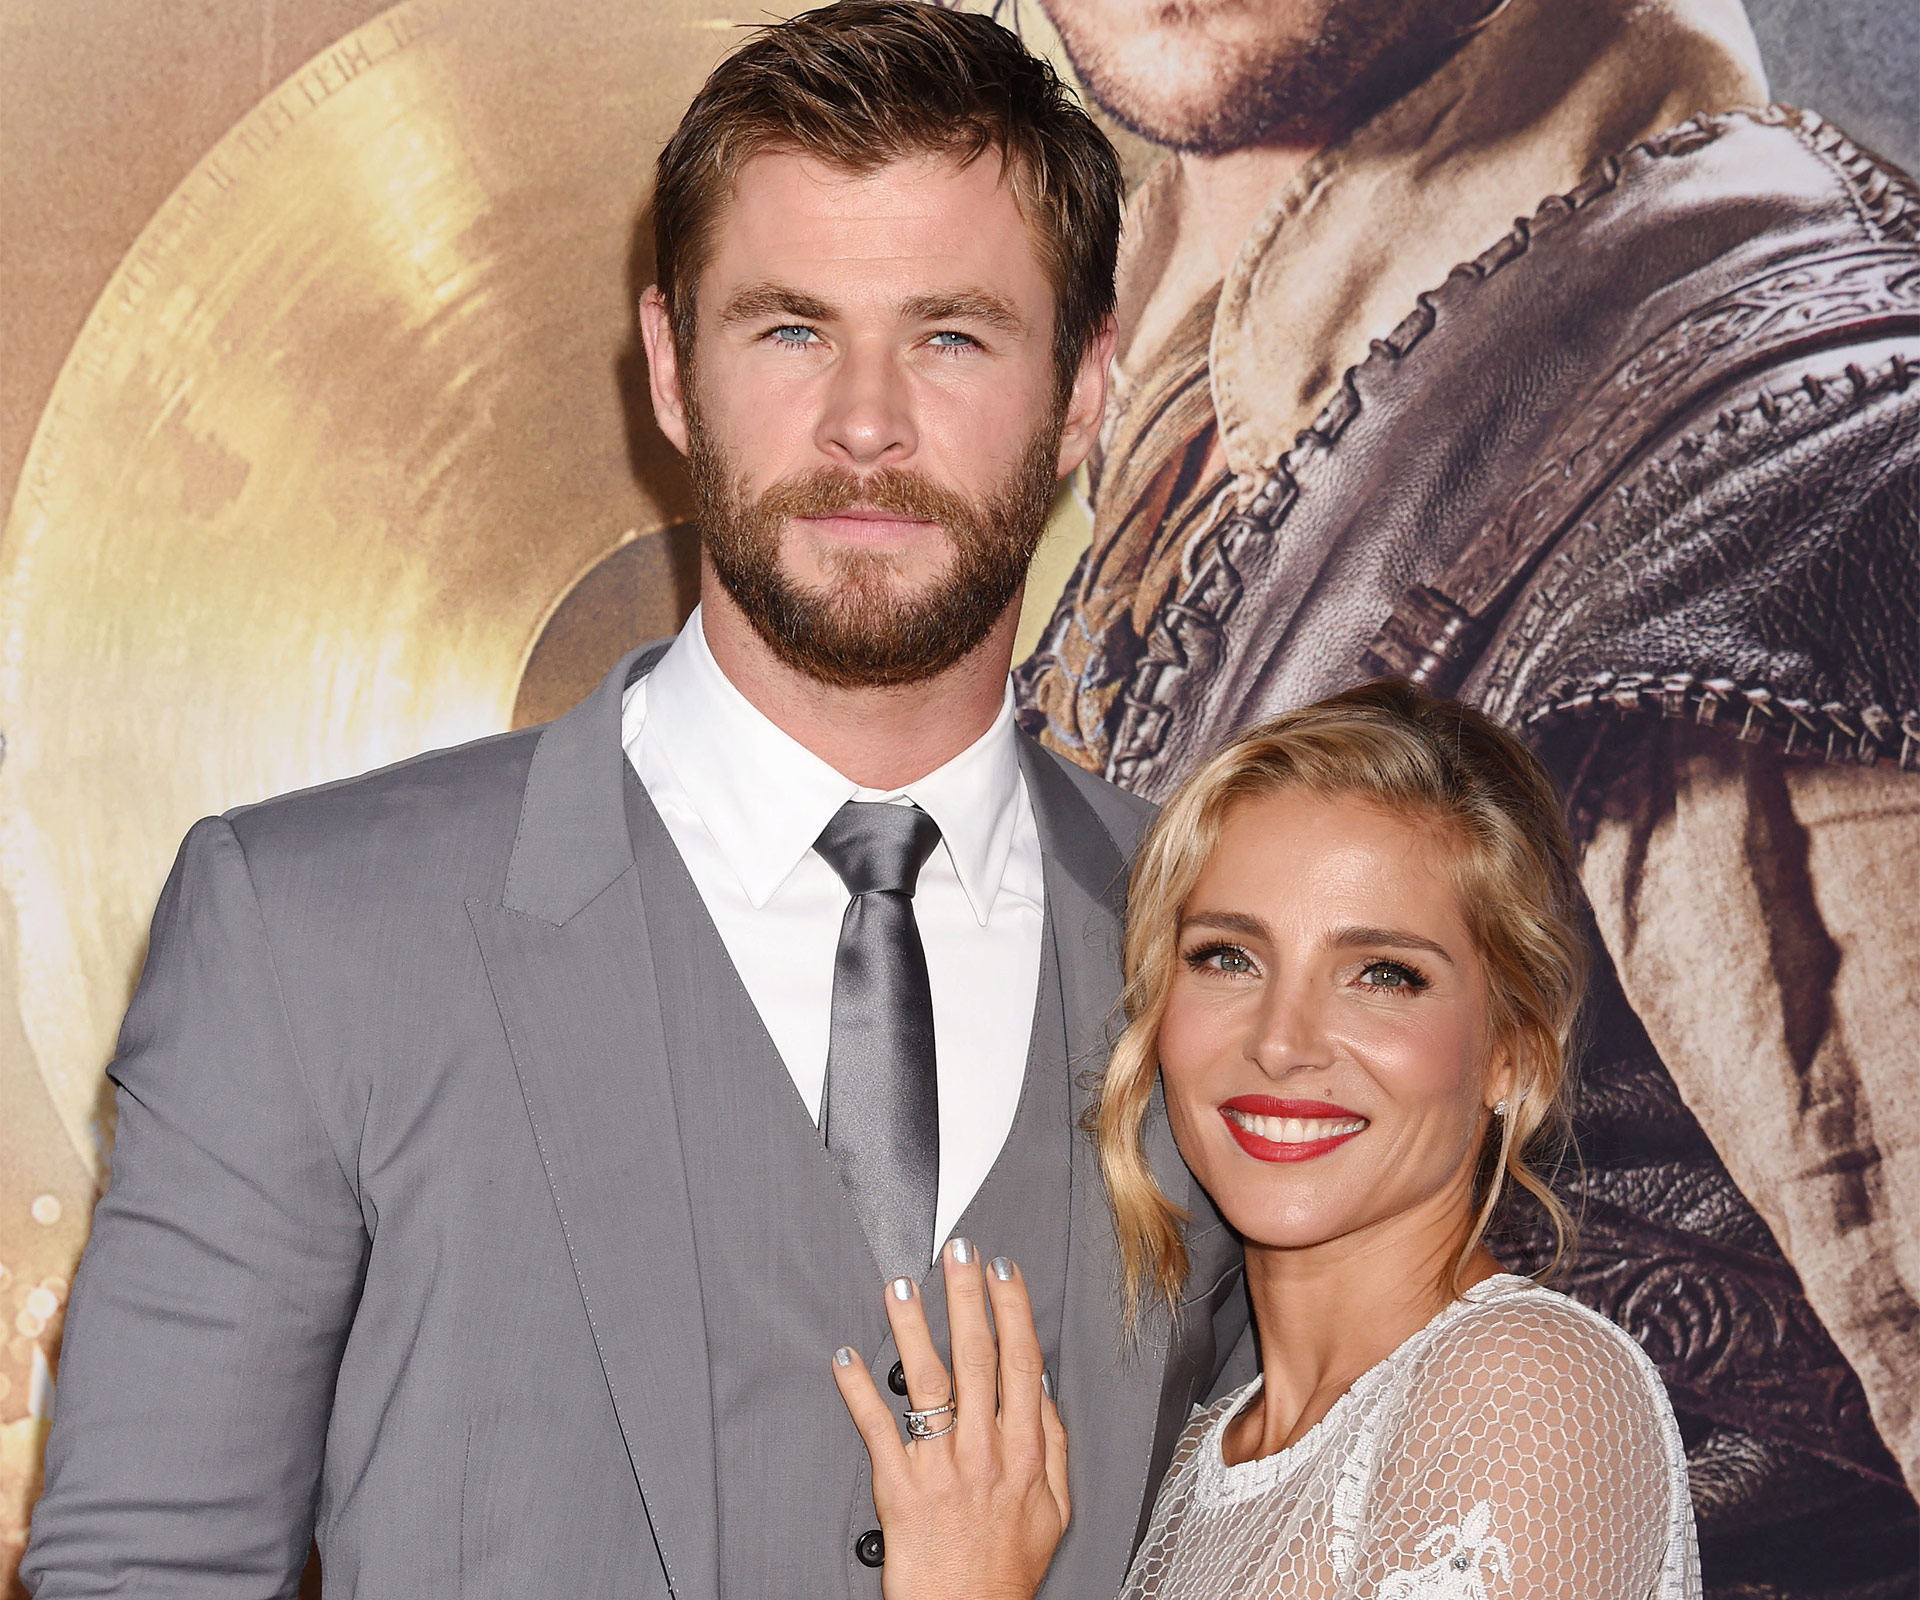 Hemsworth teases claims his marriage is over